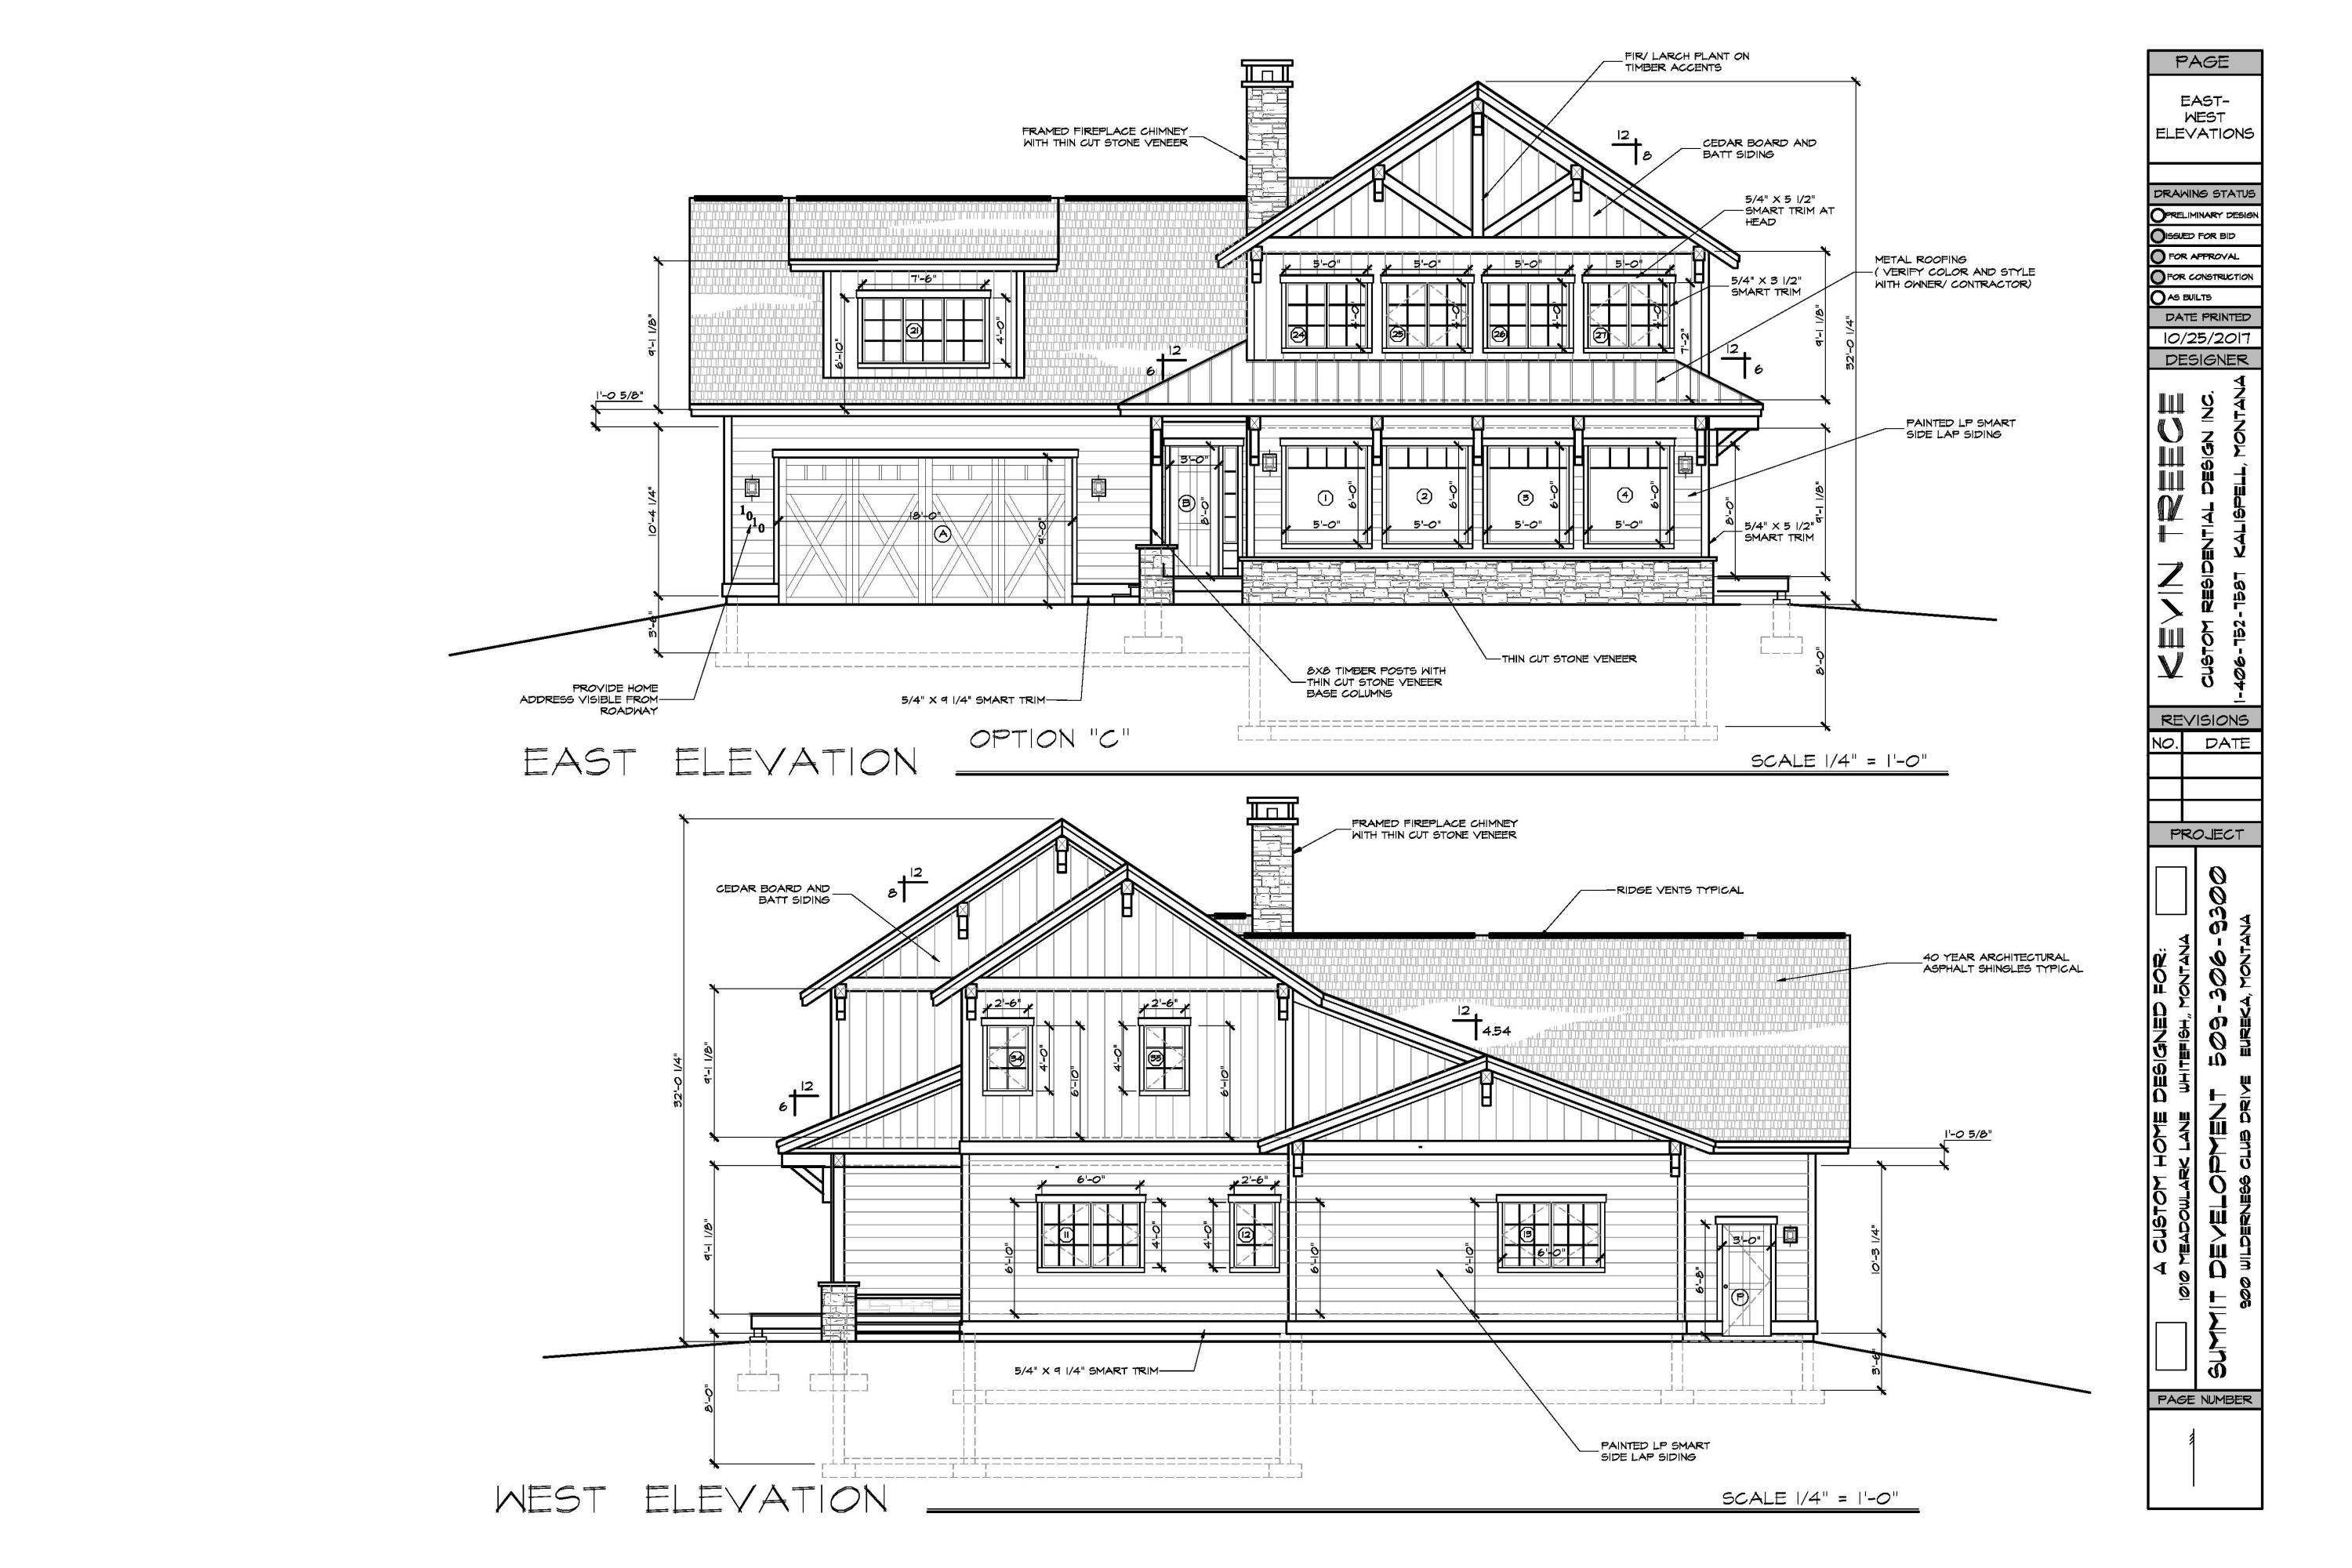 PG 1 EAST - WEST ELEVATIONS-page-001